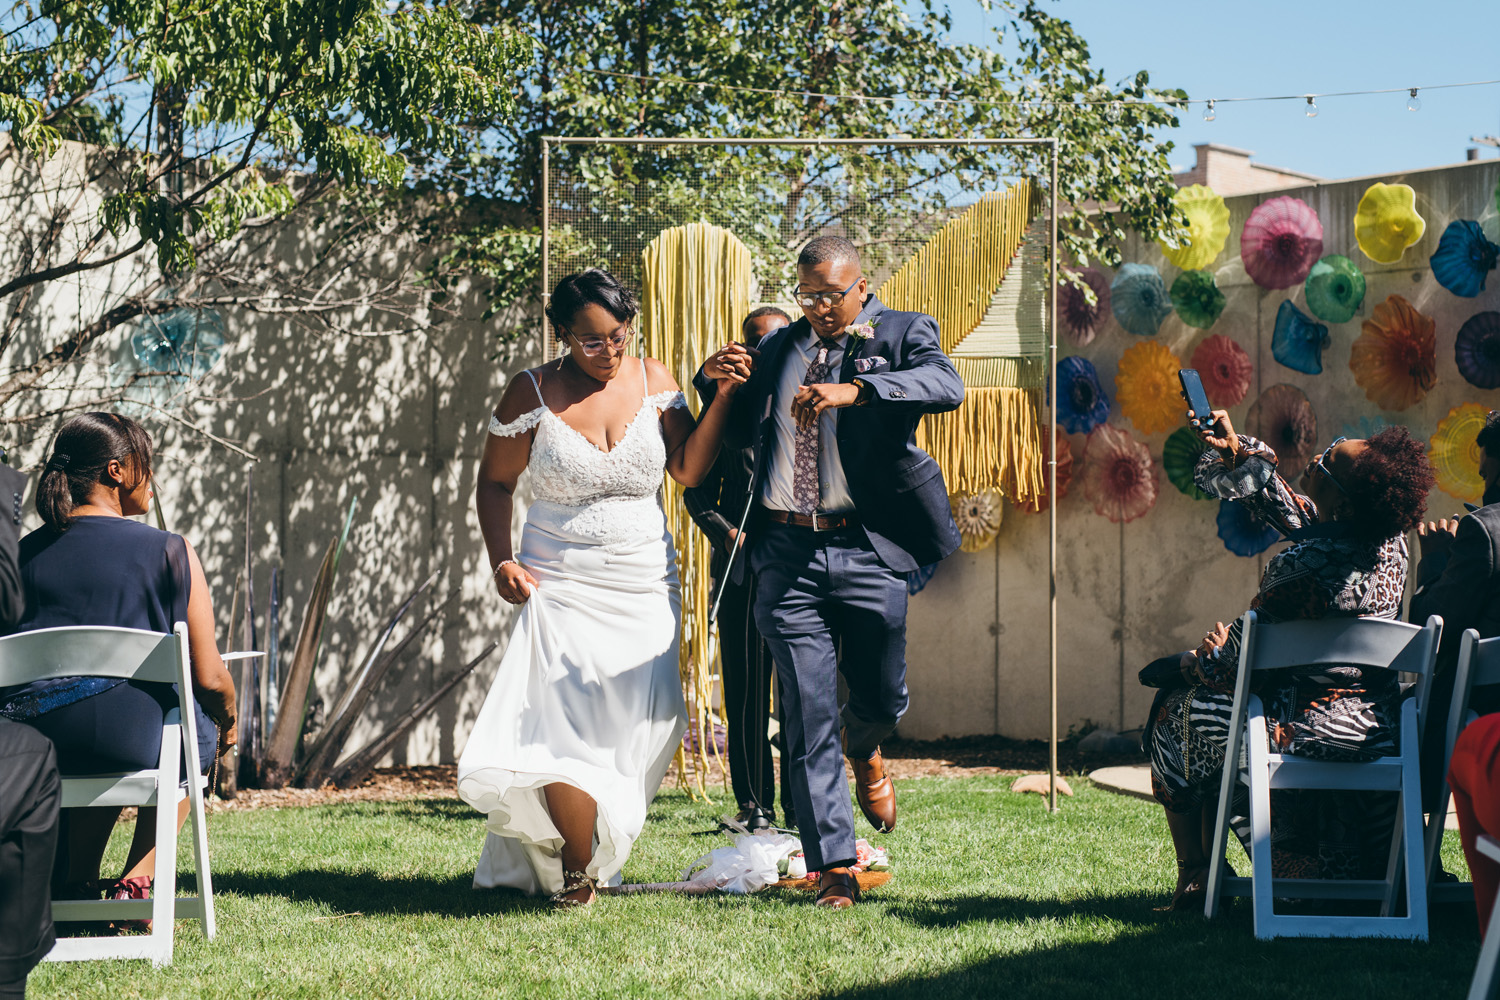 bride and groom jumping the broom in outdoor wedding ceremony